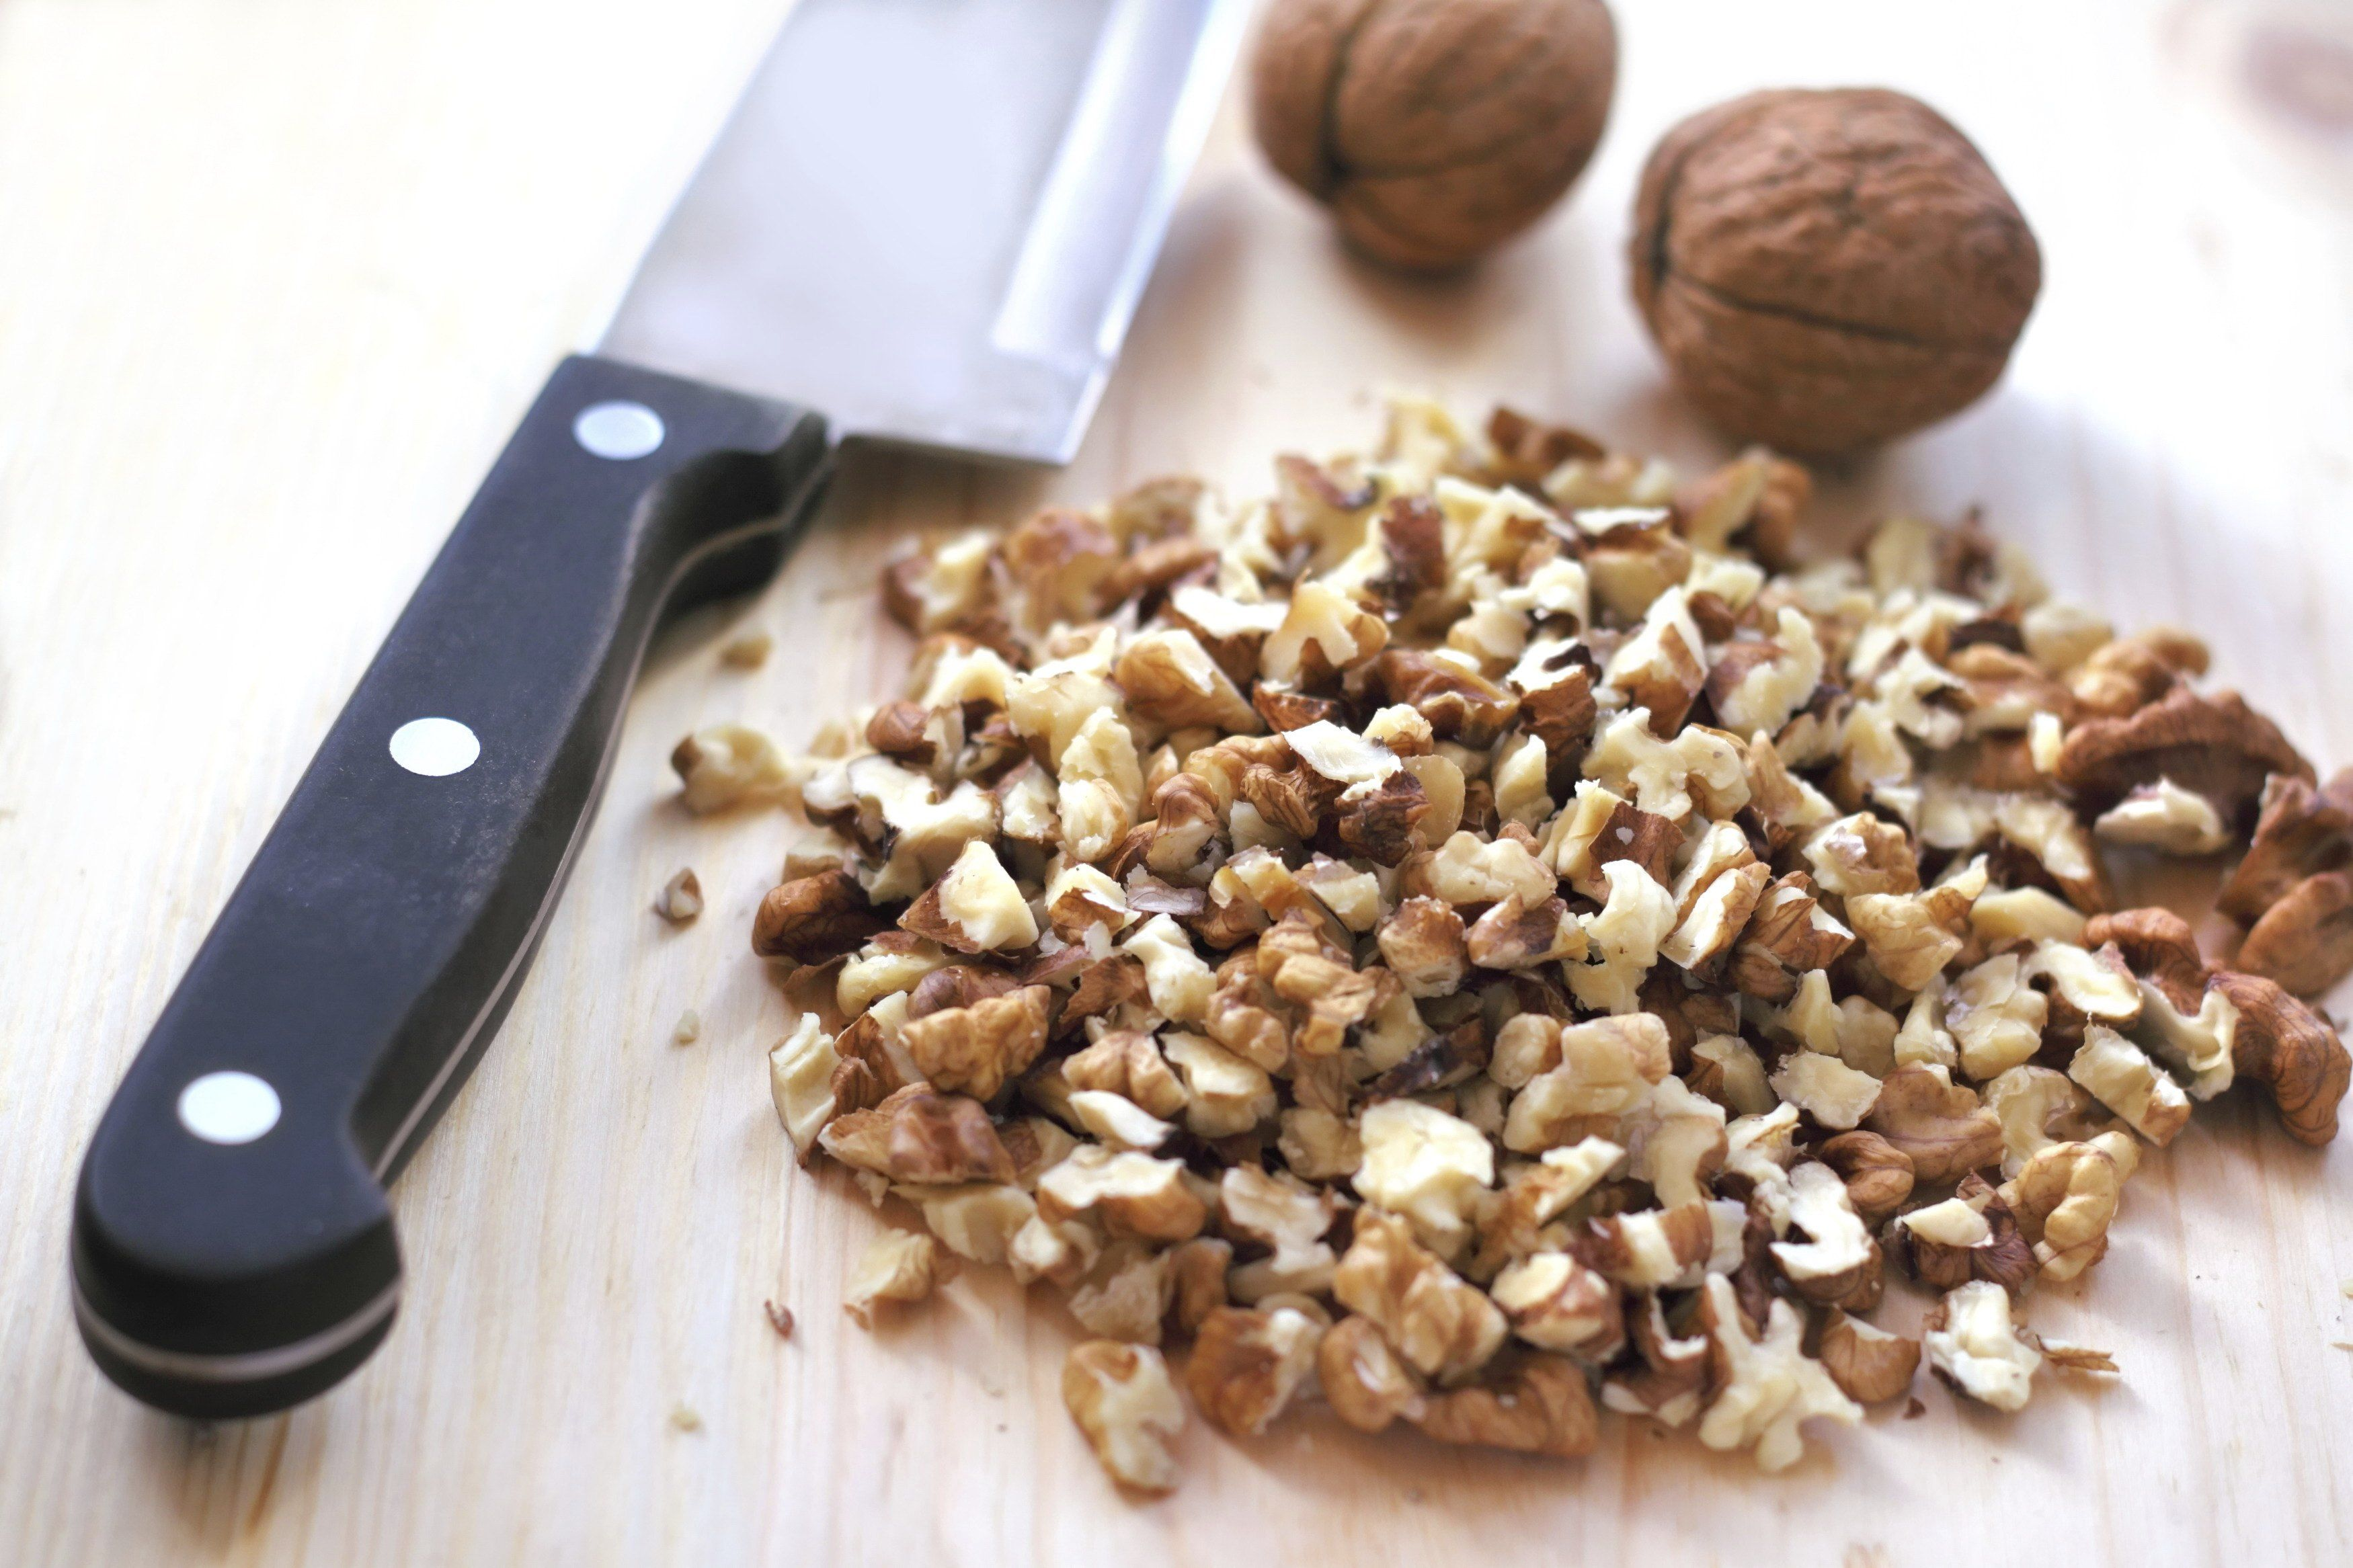 Nutrition Information for 1/4 Cup of Walnuts | Livestrong.com